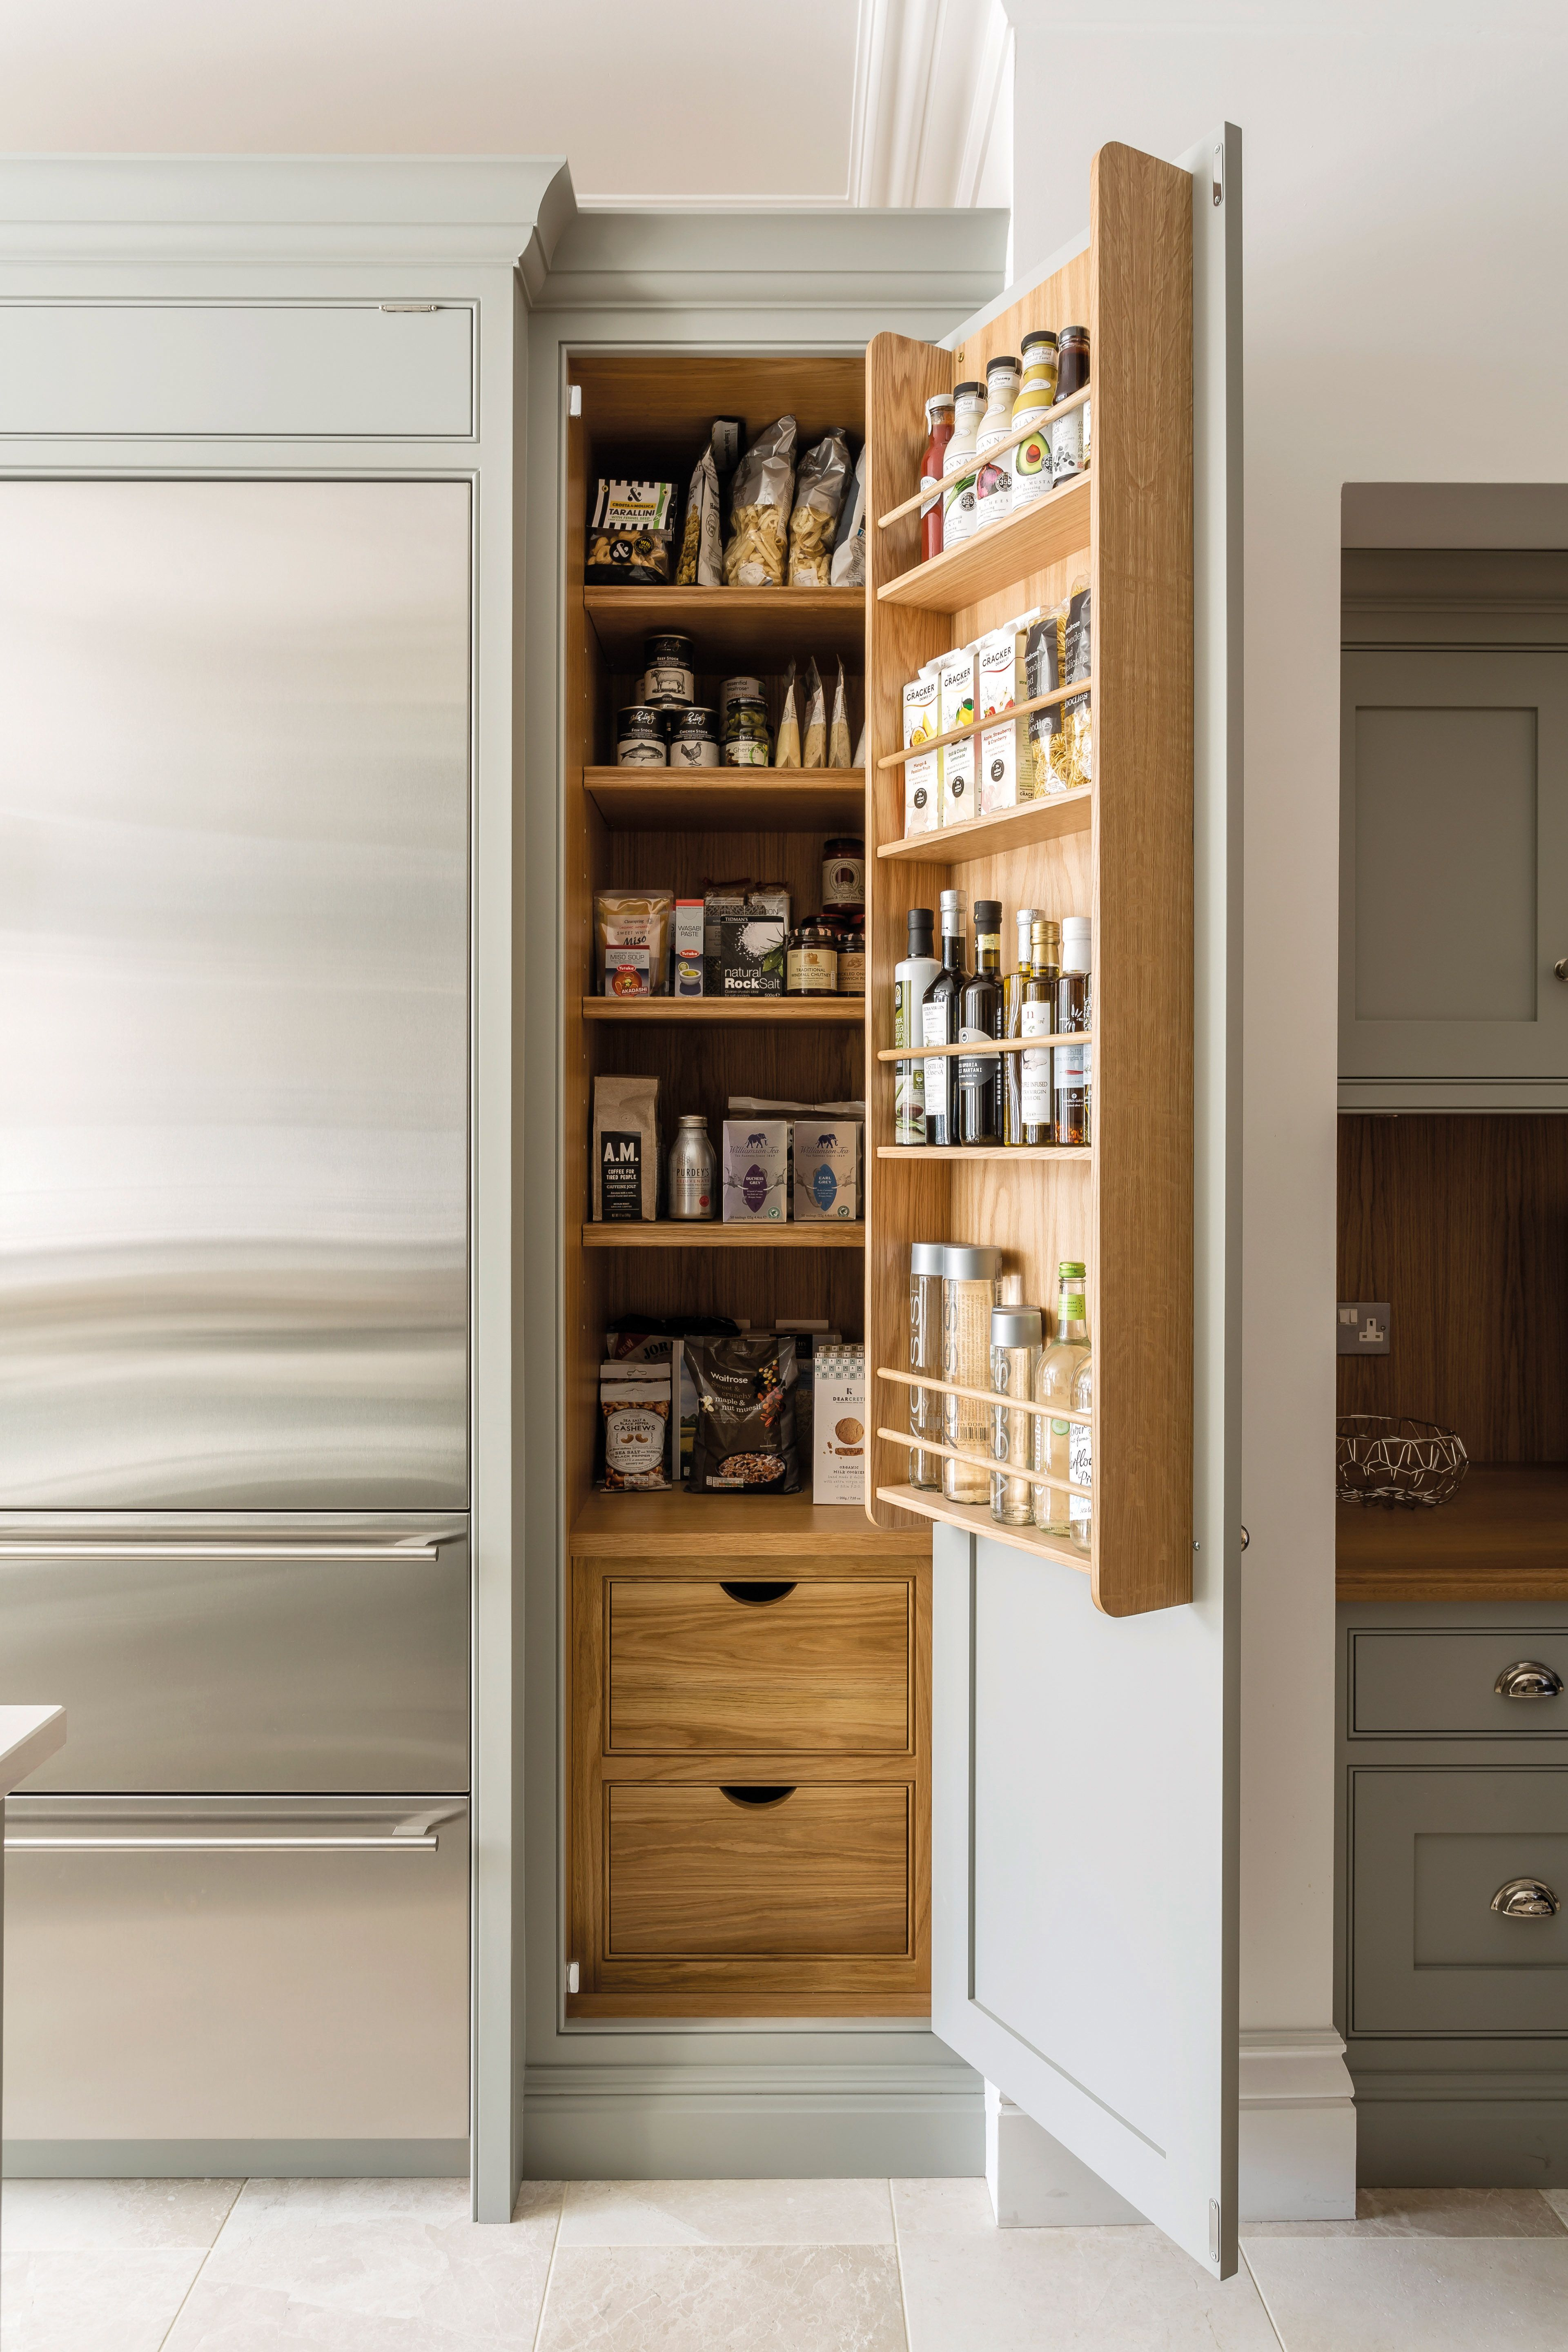 12 Pantry Ideas - Larder Cupboard Ideas For Every Kitchen